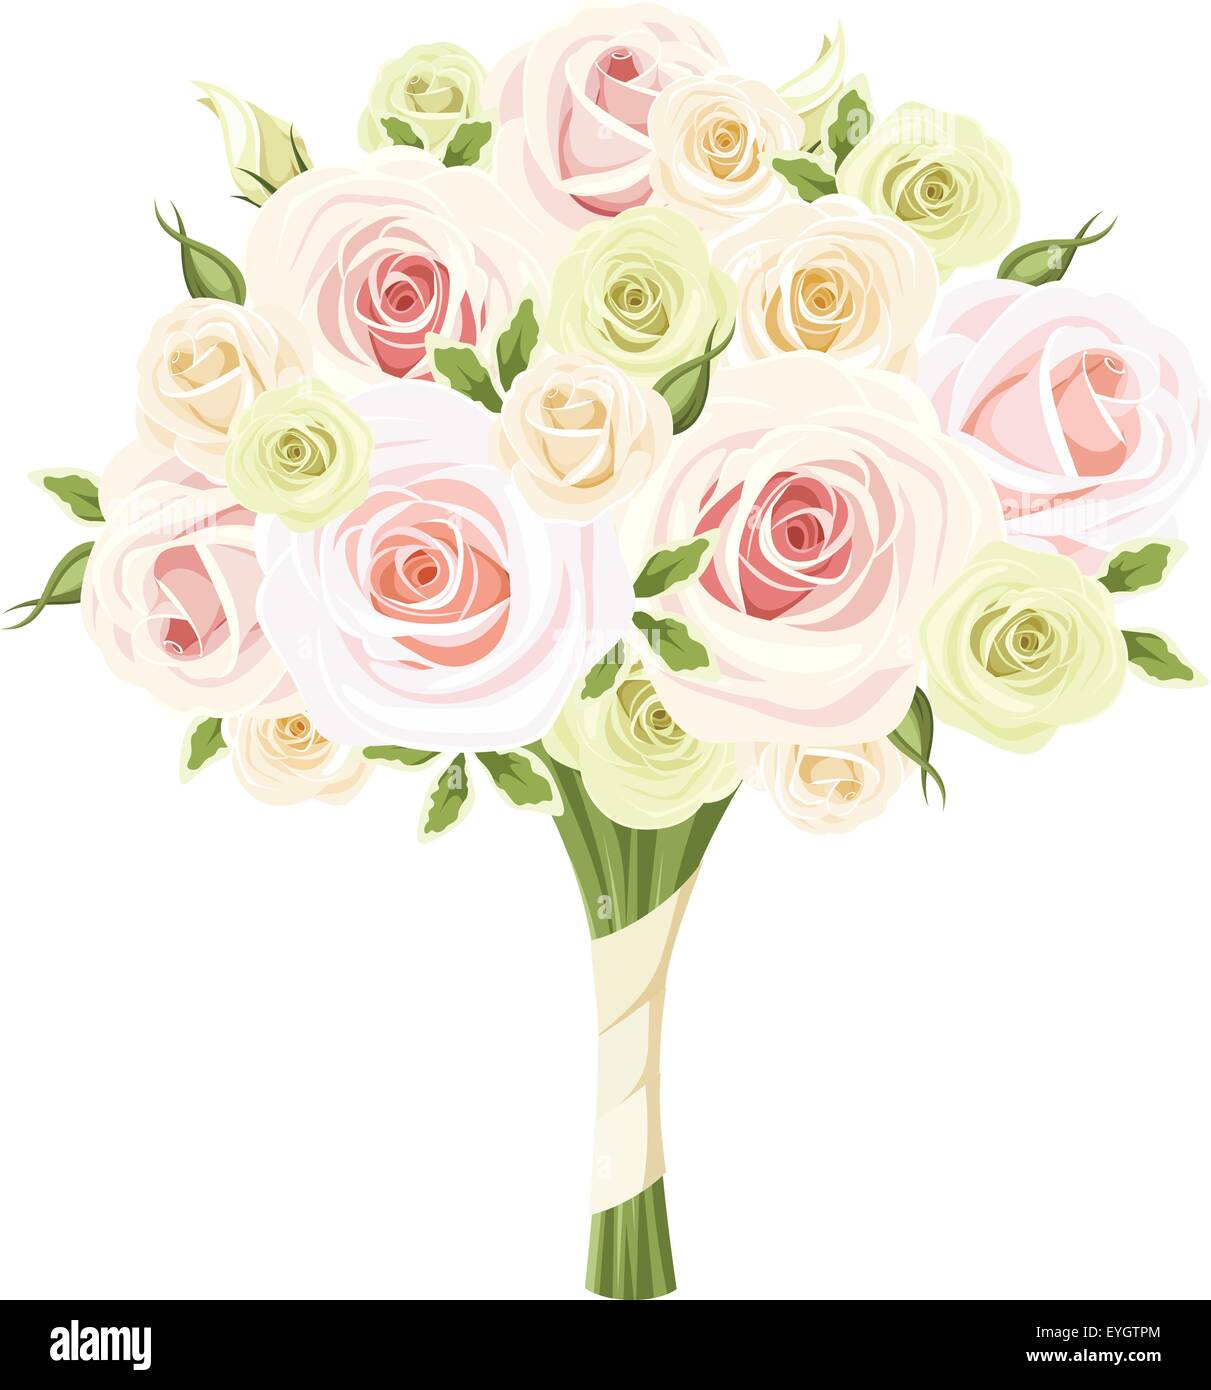 Wedding Bouquet Of Pink White And Green Roses Vector Illustration